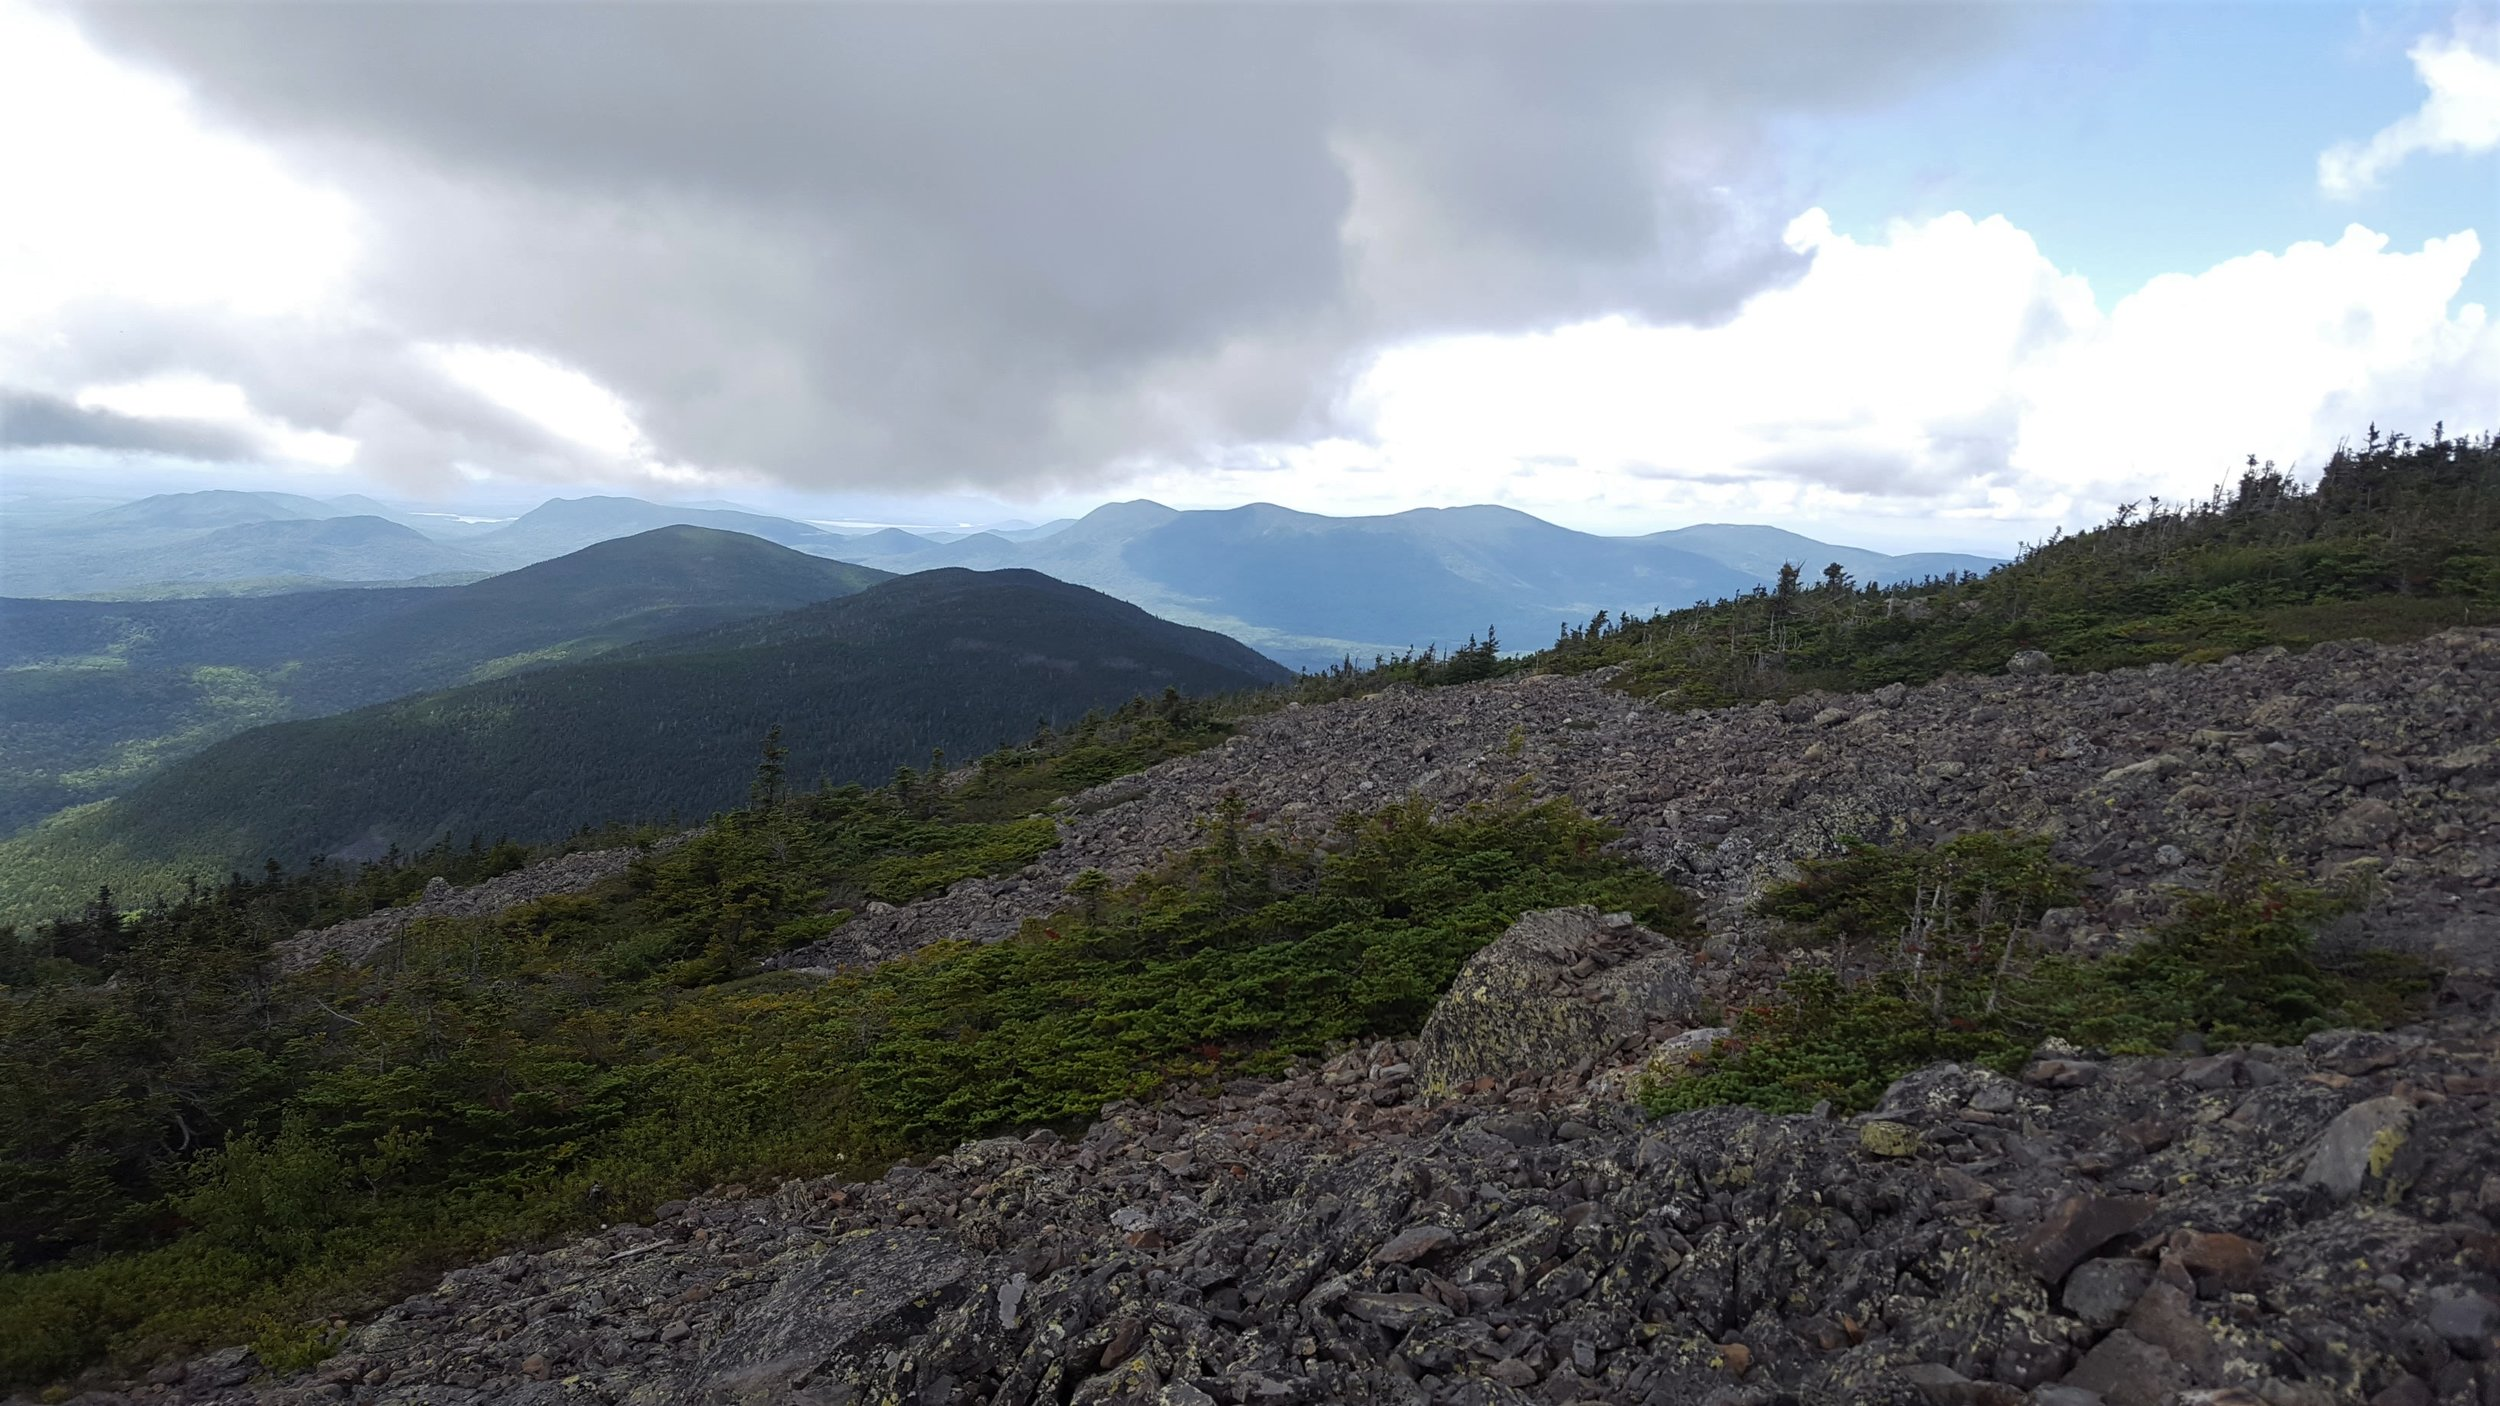 Looking southeast from the summit across Pleasant River valley to the Barren-Chairback Range